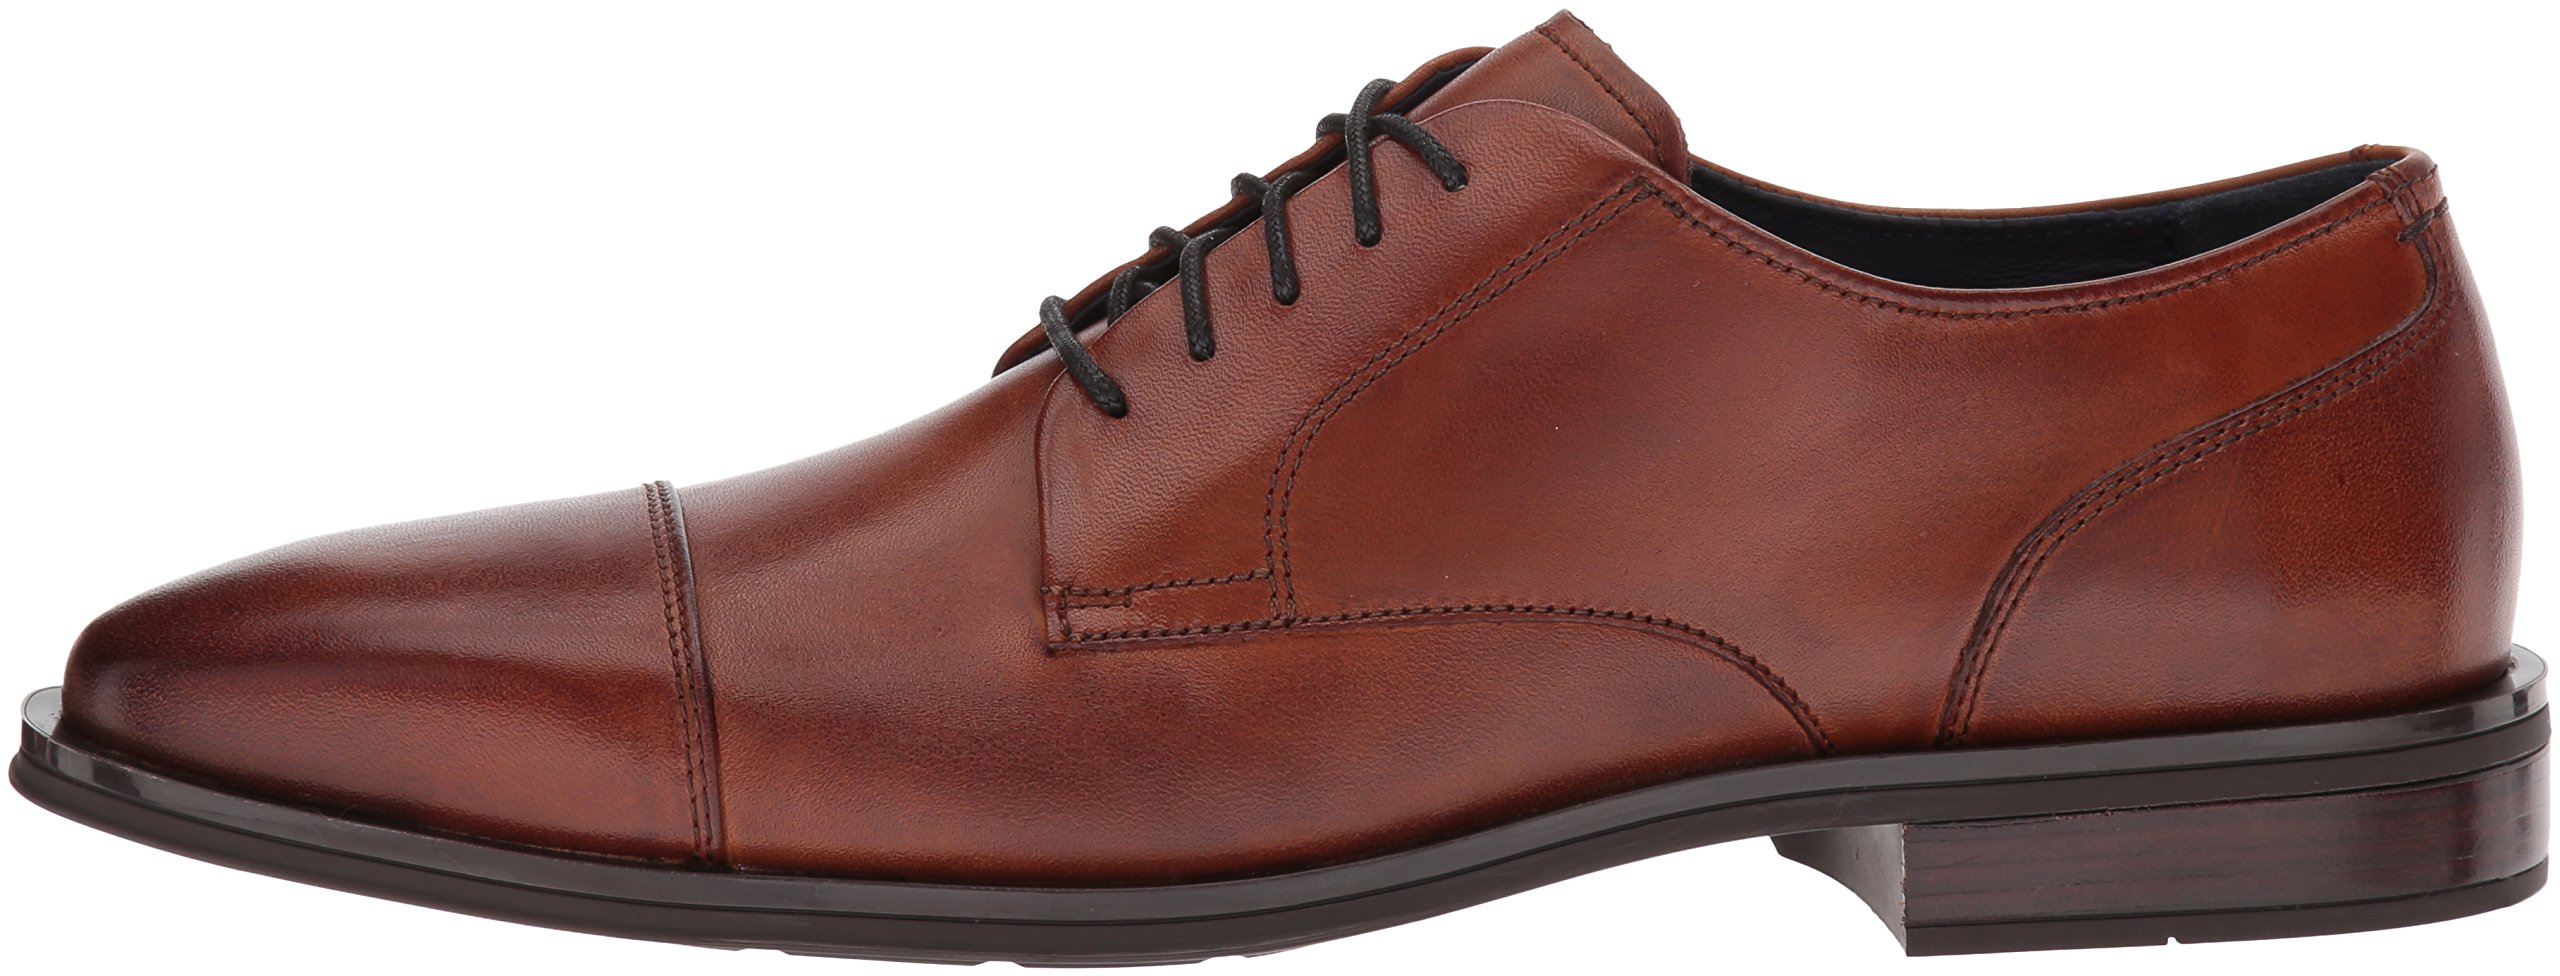 Cole Haan Men's Dawes Grand Cap Toe Oxford, British Tan, 11 Medium US by Cole Haan (Image #5)